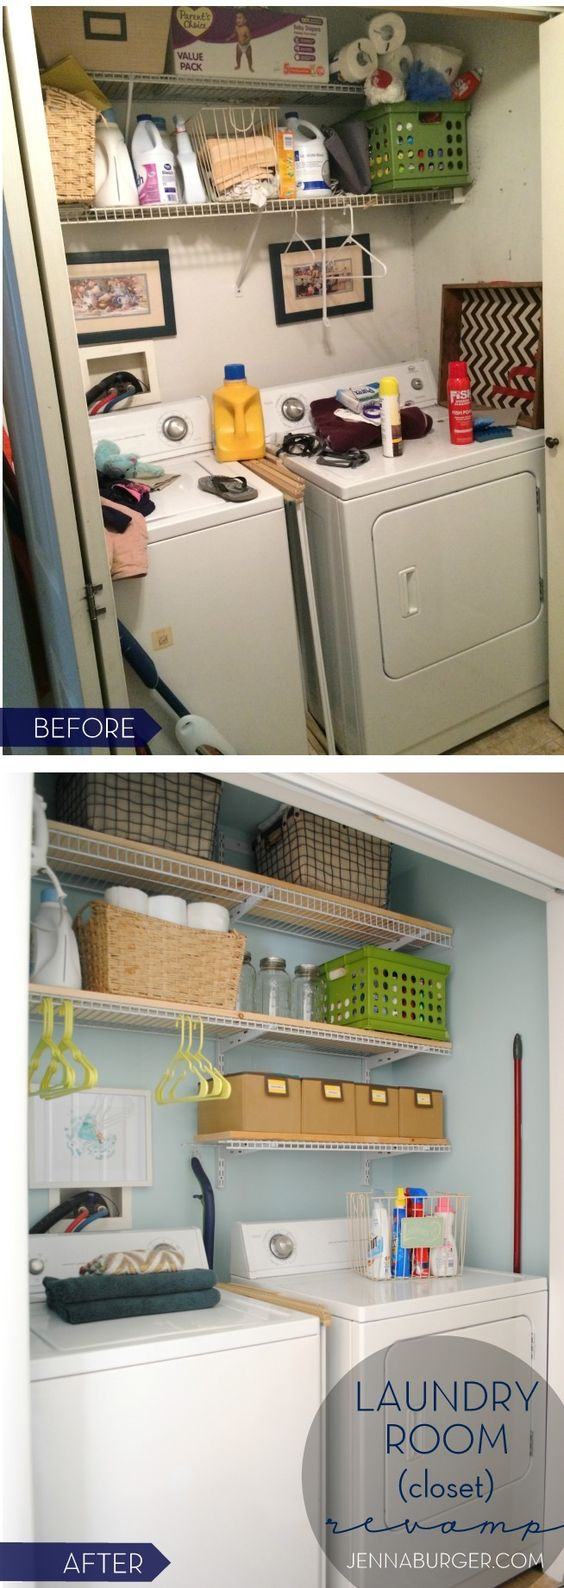 Conventional laundry room shelving cabinets